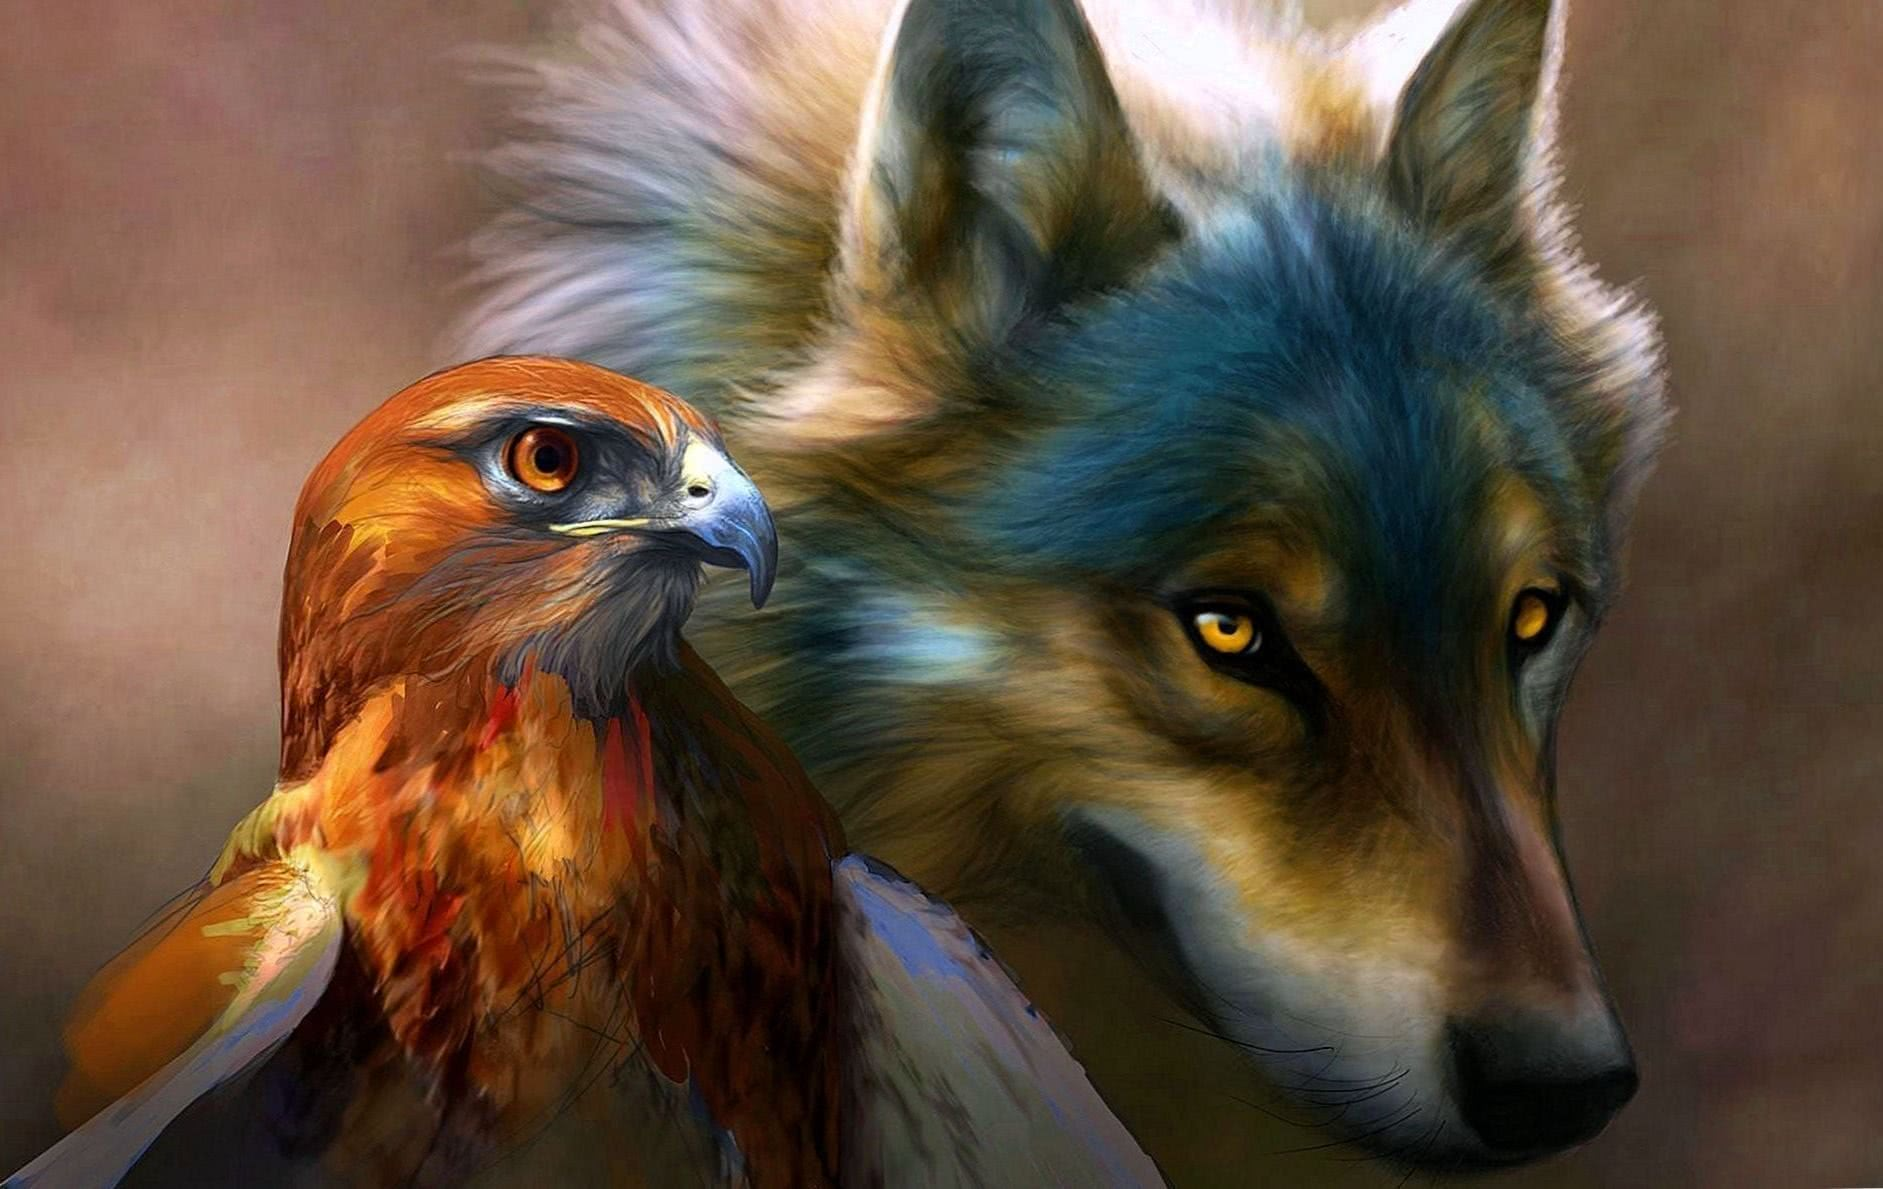 Wolf And Eagle Wallpaper